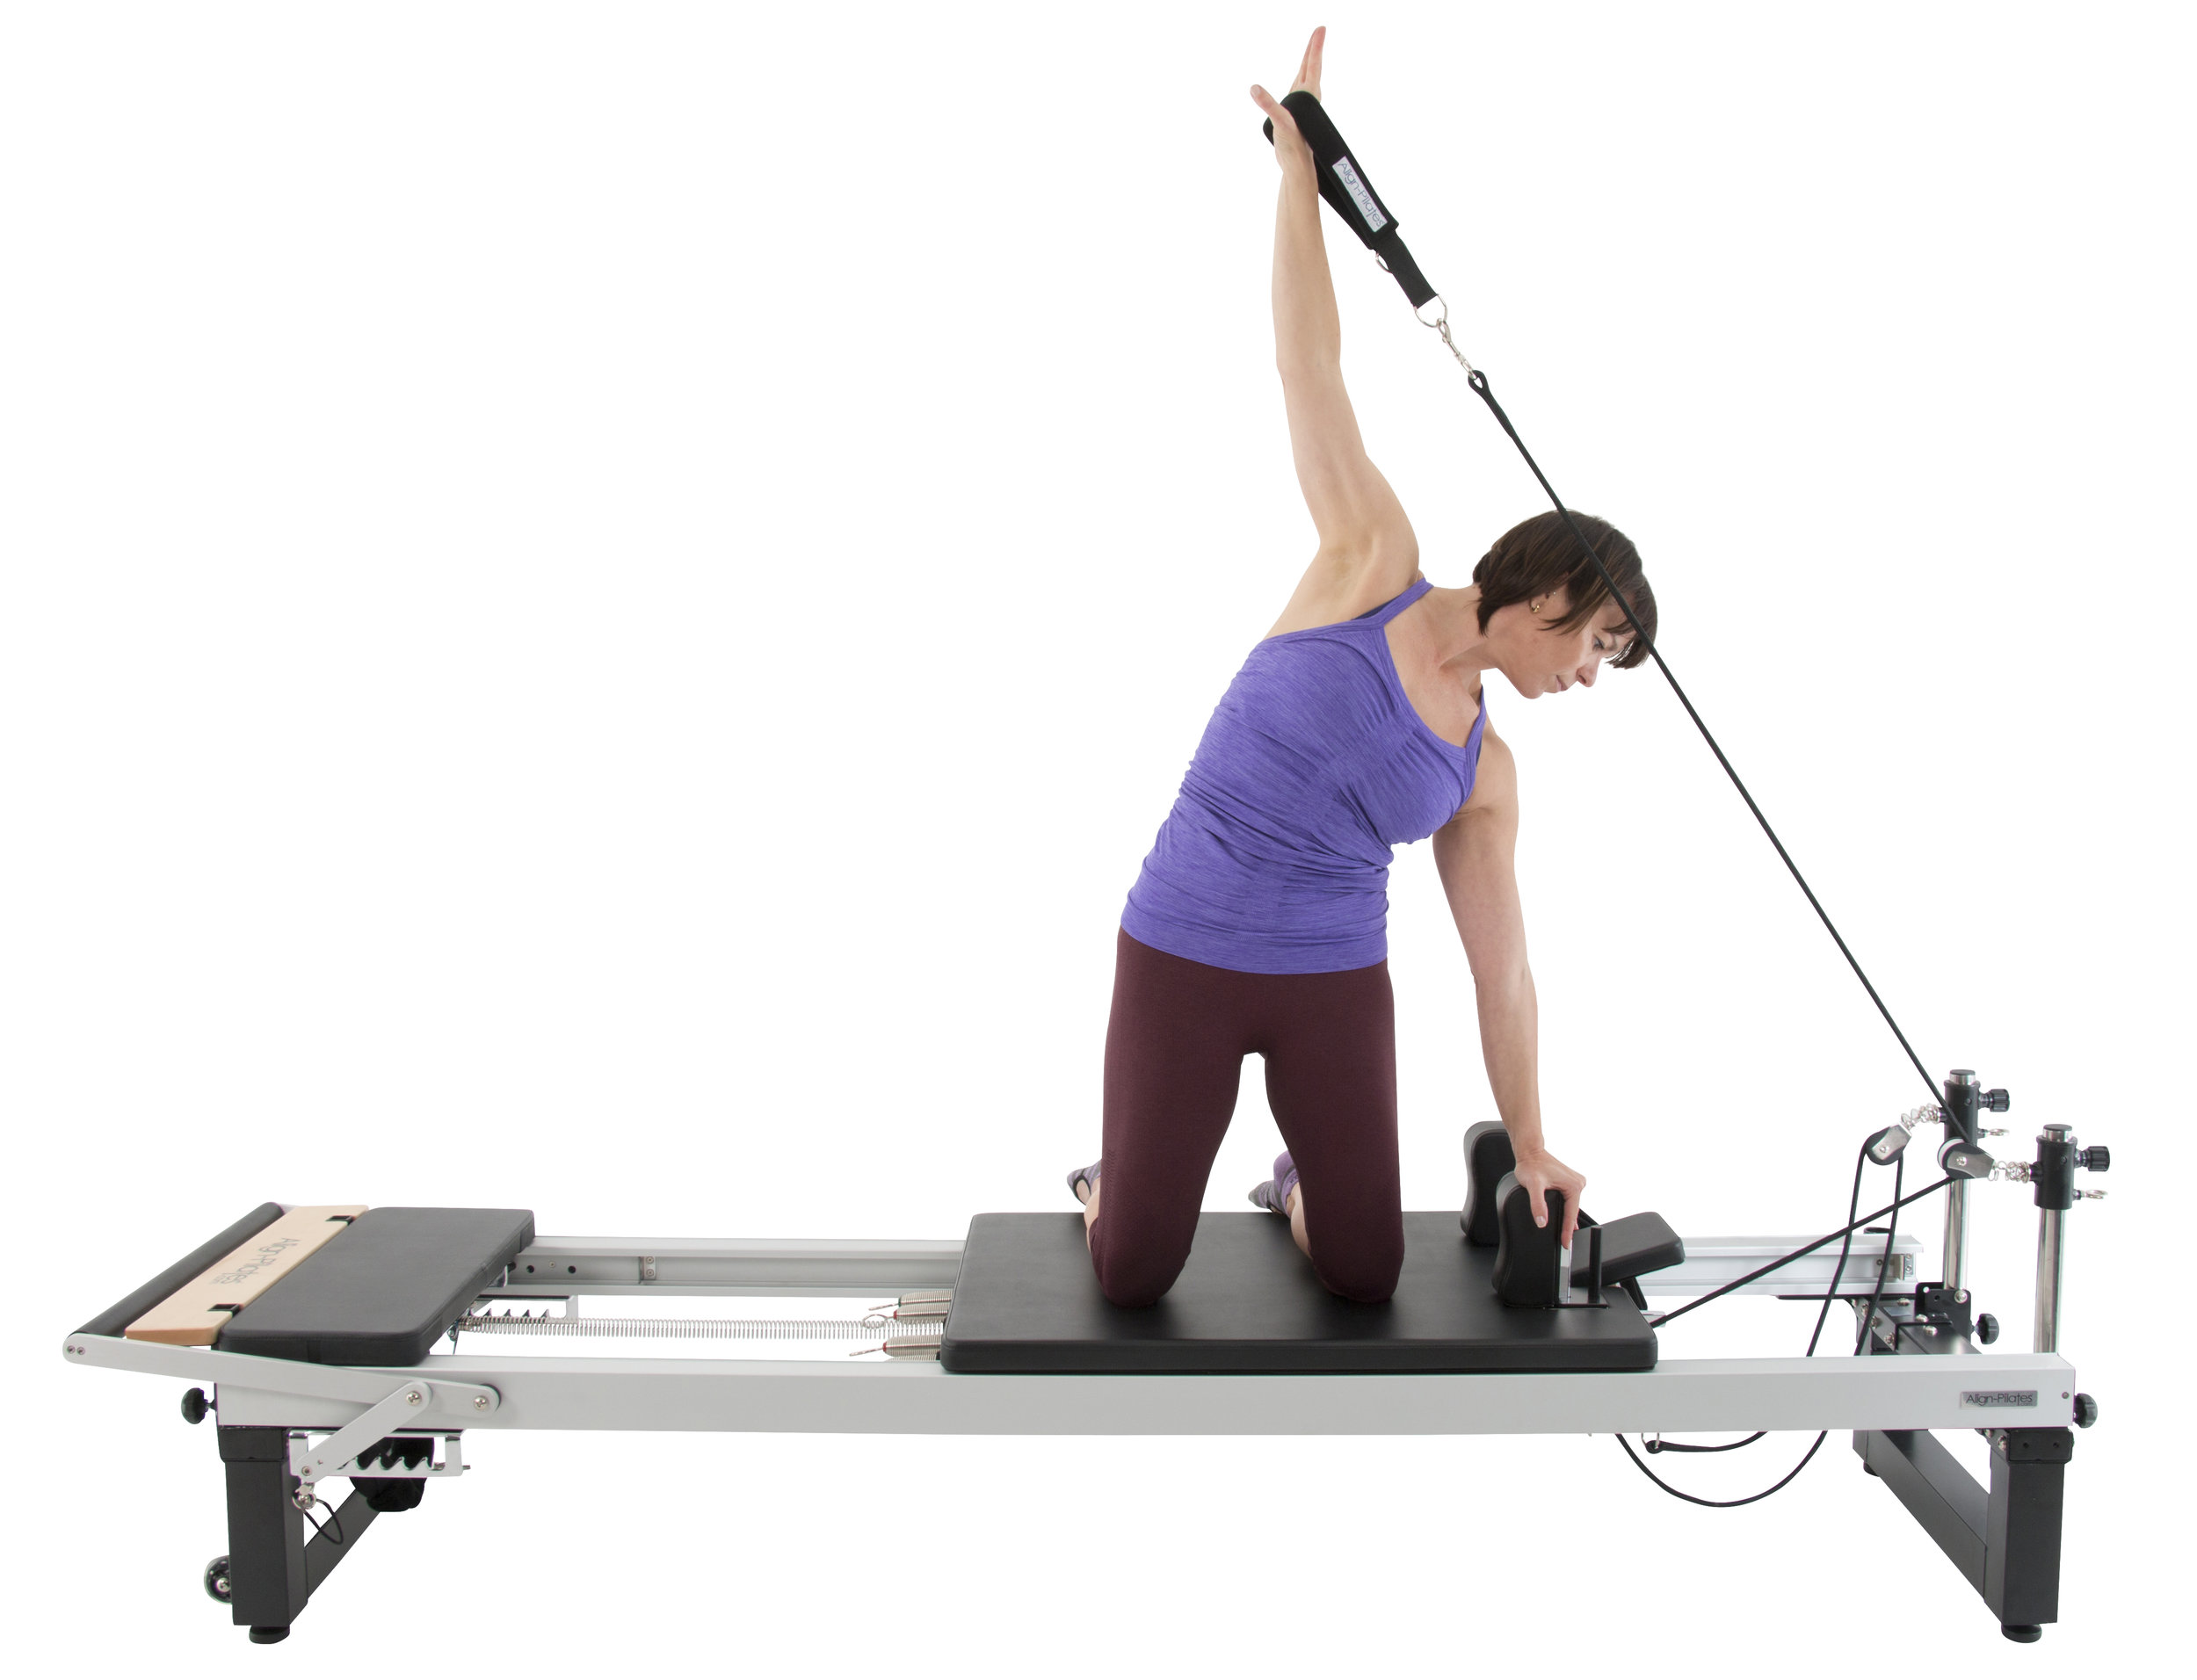 Align A2R2 studio pilates reformer with 43cm extension legs